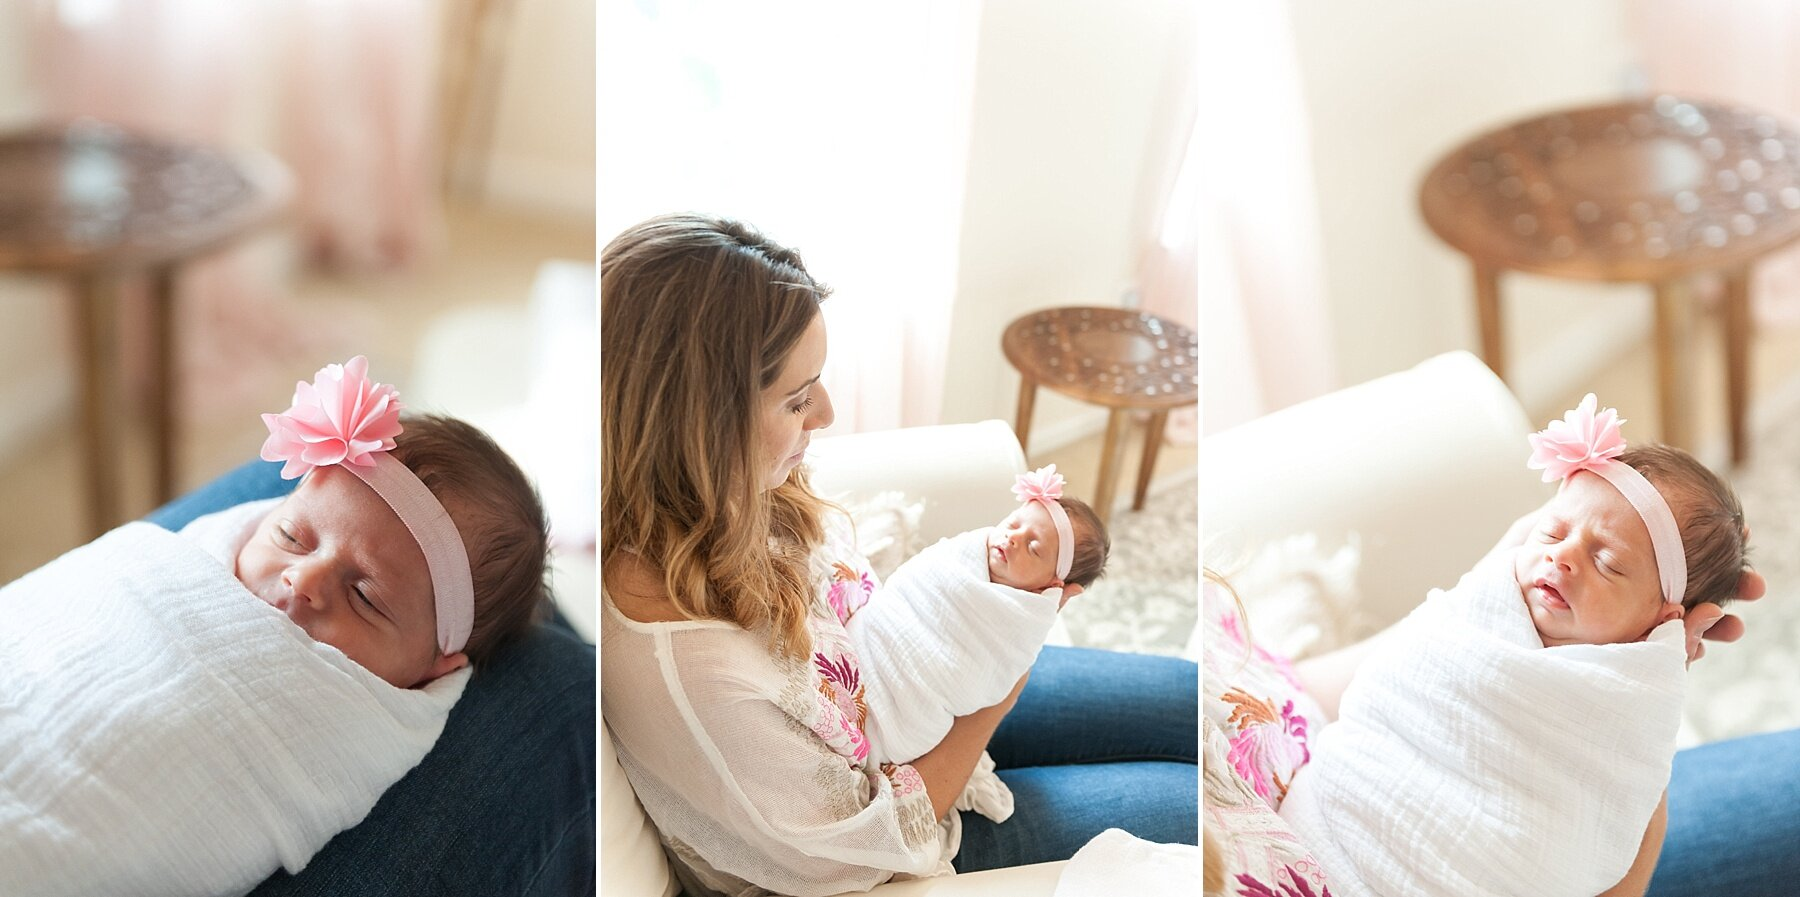 Wendy Zook Photography | Frederick MD newborn photographer, Maryland newborn photographer, Frederick newborn portraits, in home newborn photography, lifestyle newborn portraits, Frederick MD lifestyle newborn portraits, Maryland newborn photographer in home